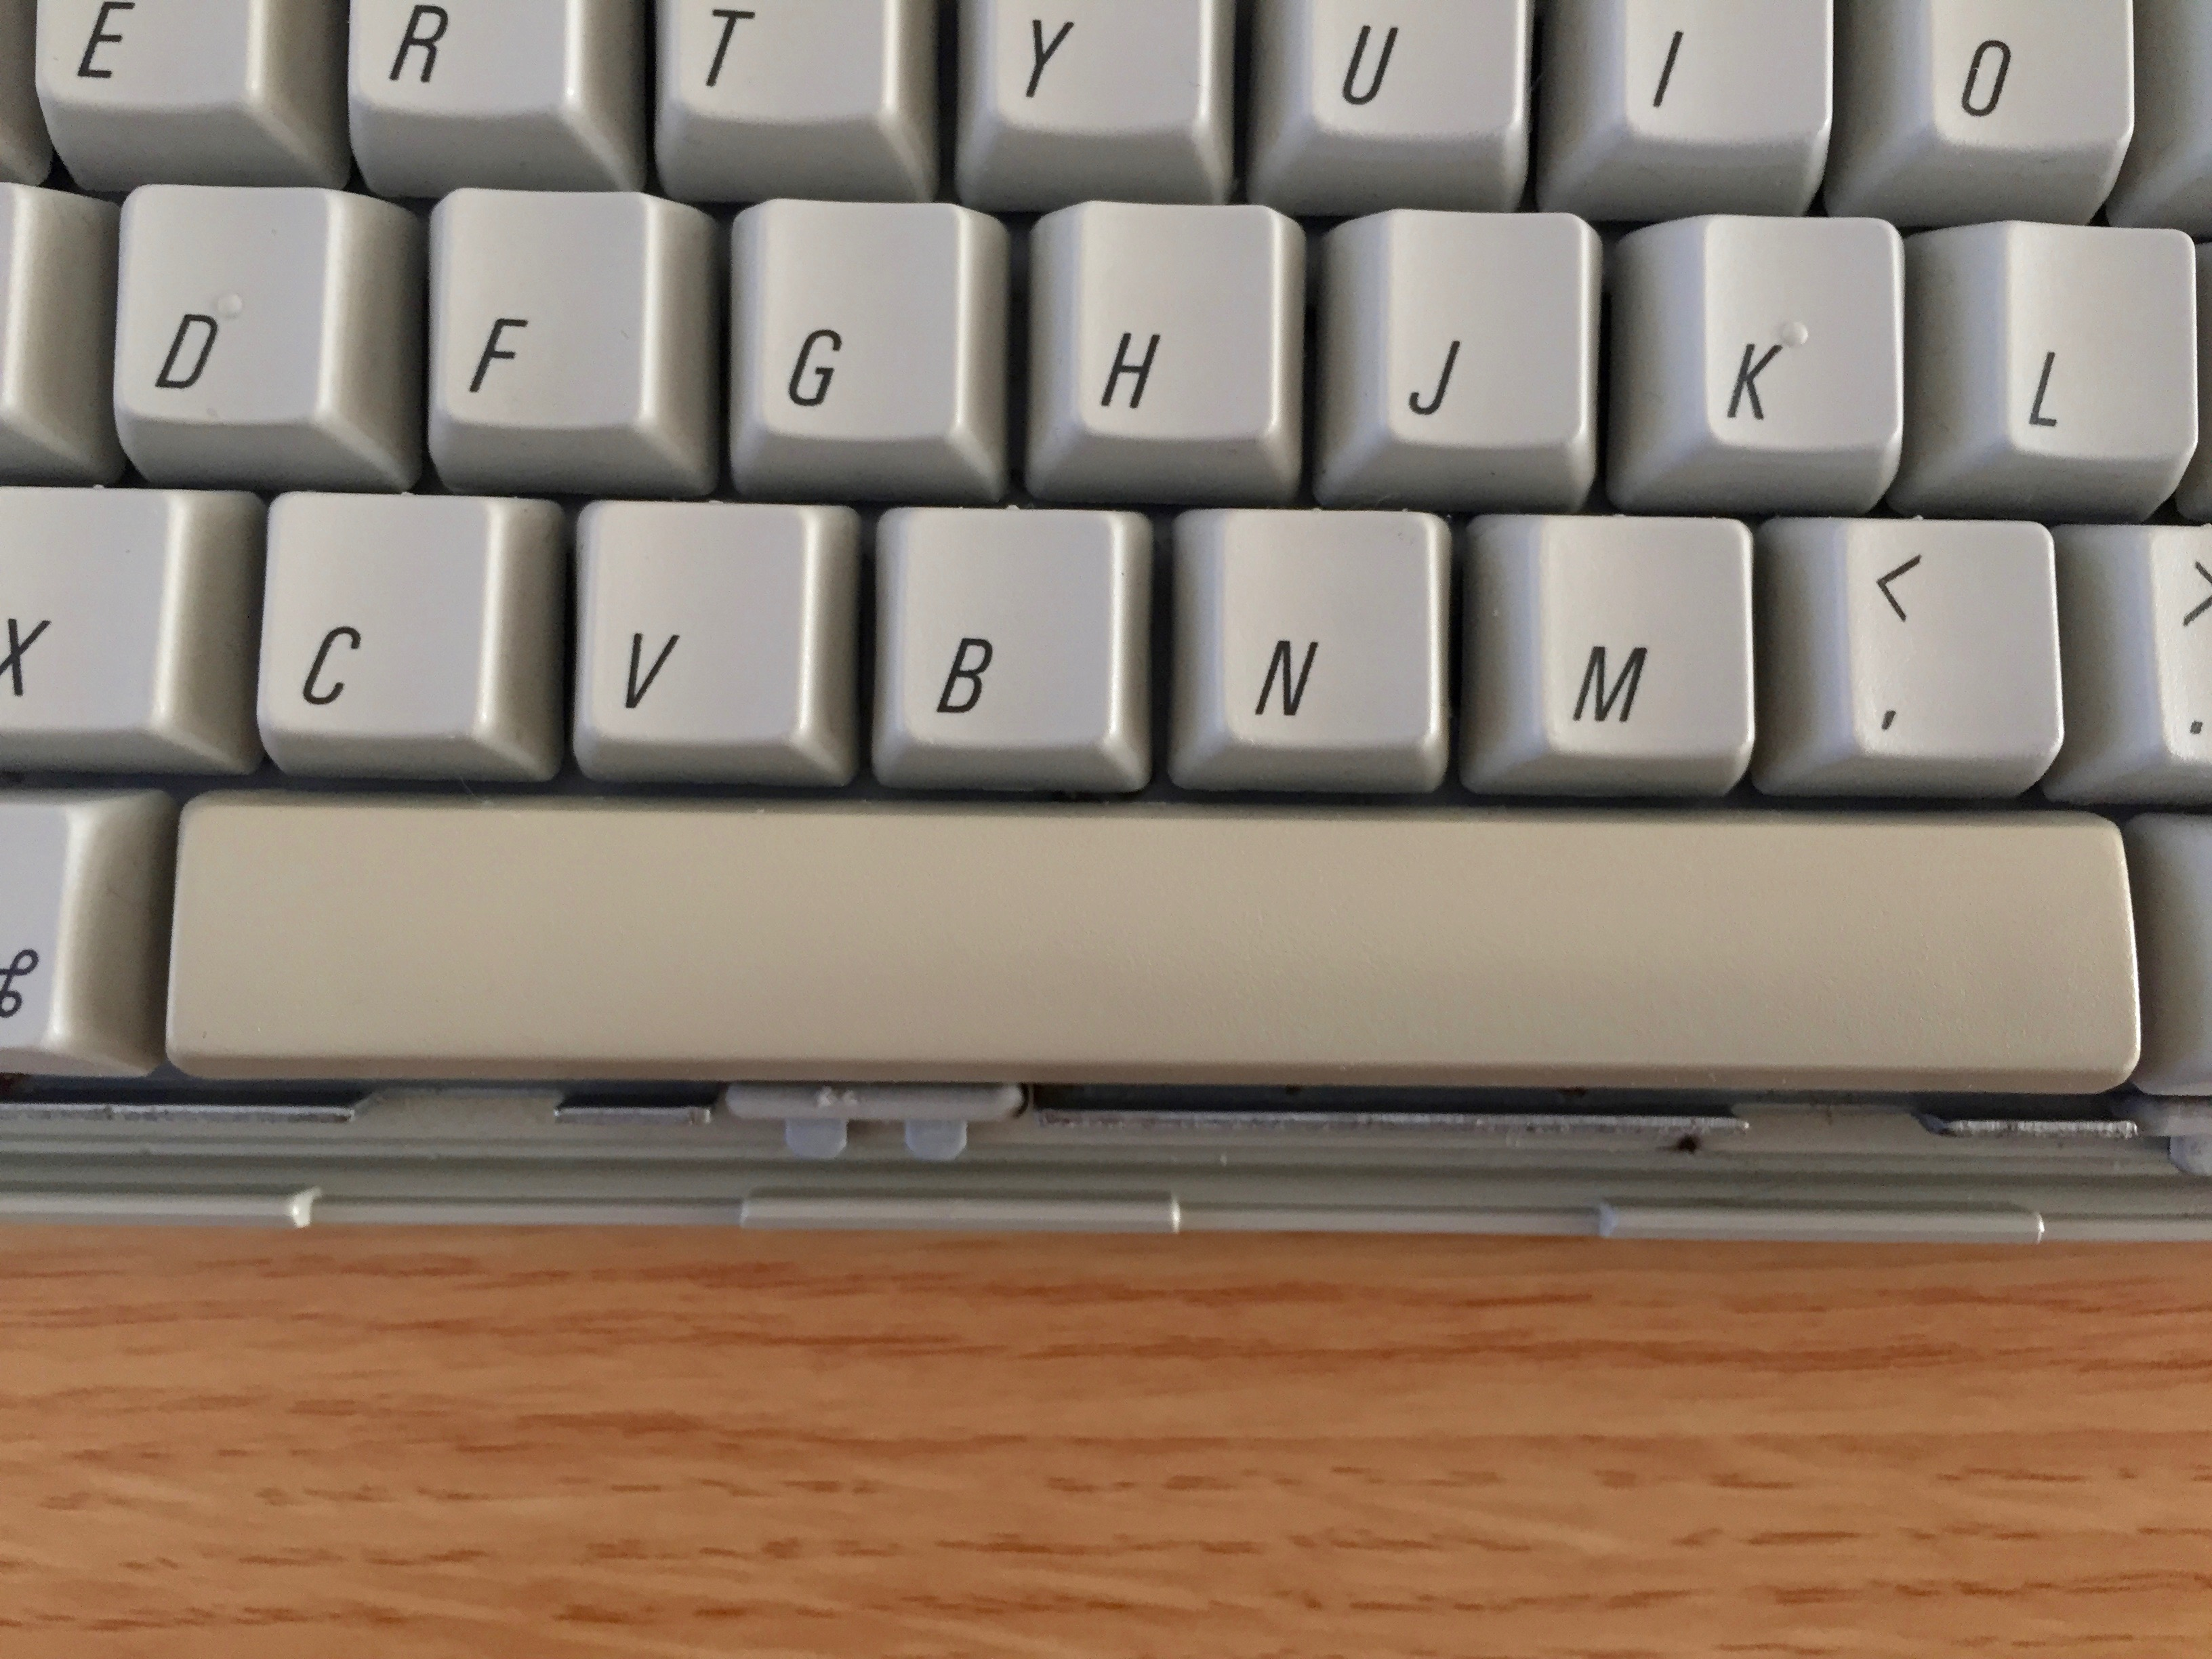 Yellow space bar